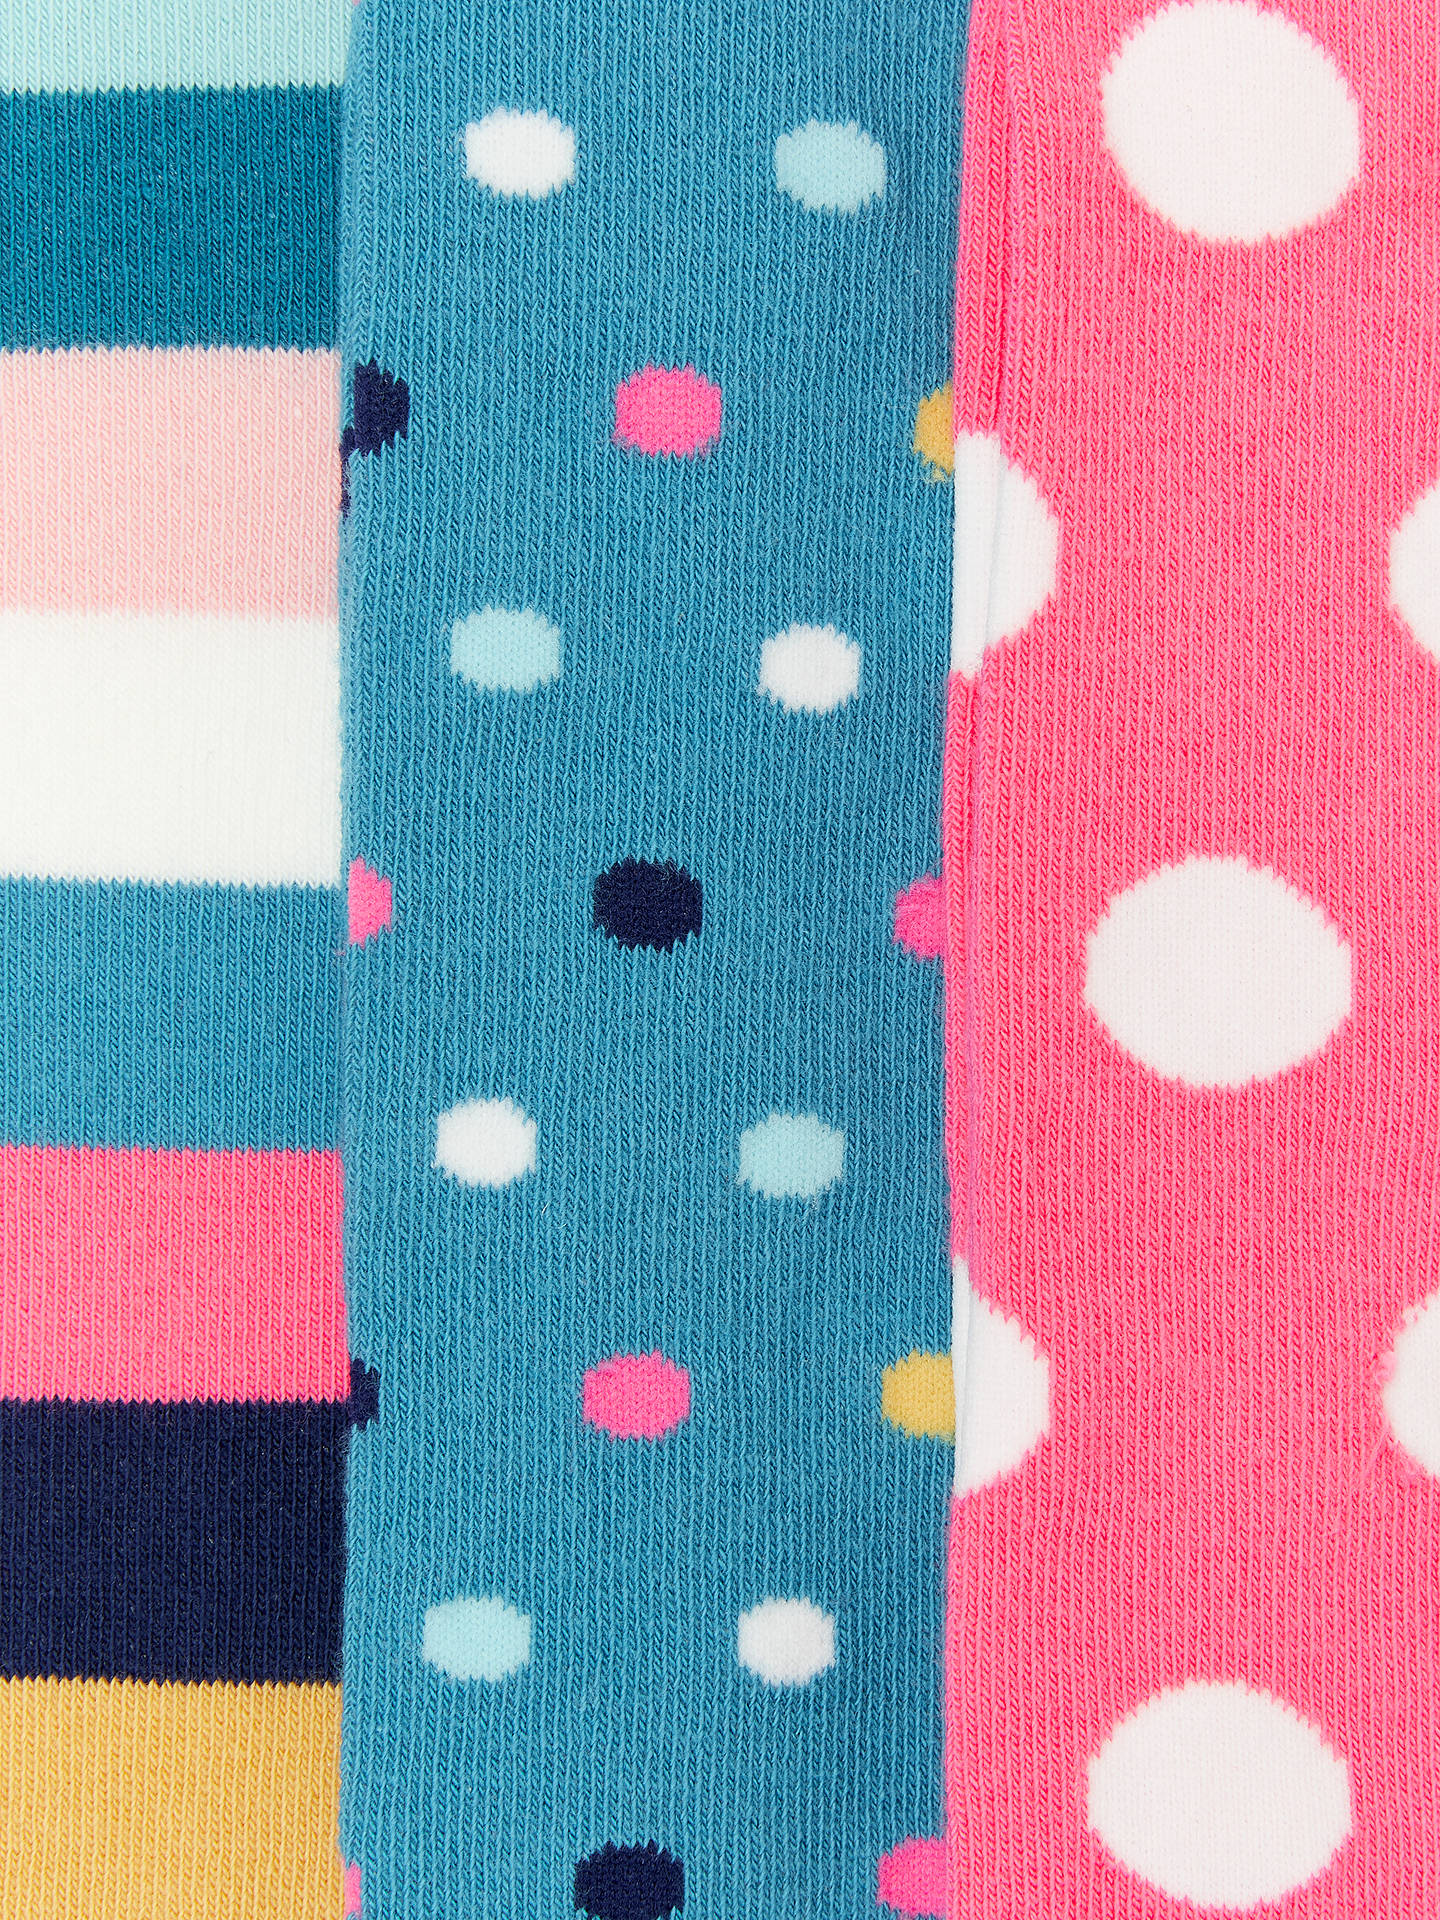 BuyJohn Lewis & Partners Girls' Bold Spot Stripe Tights, Pack of 3, Multi, 2-3 years Online at johnlewis.com